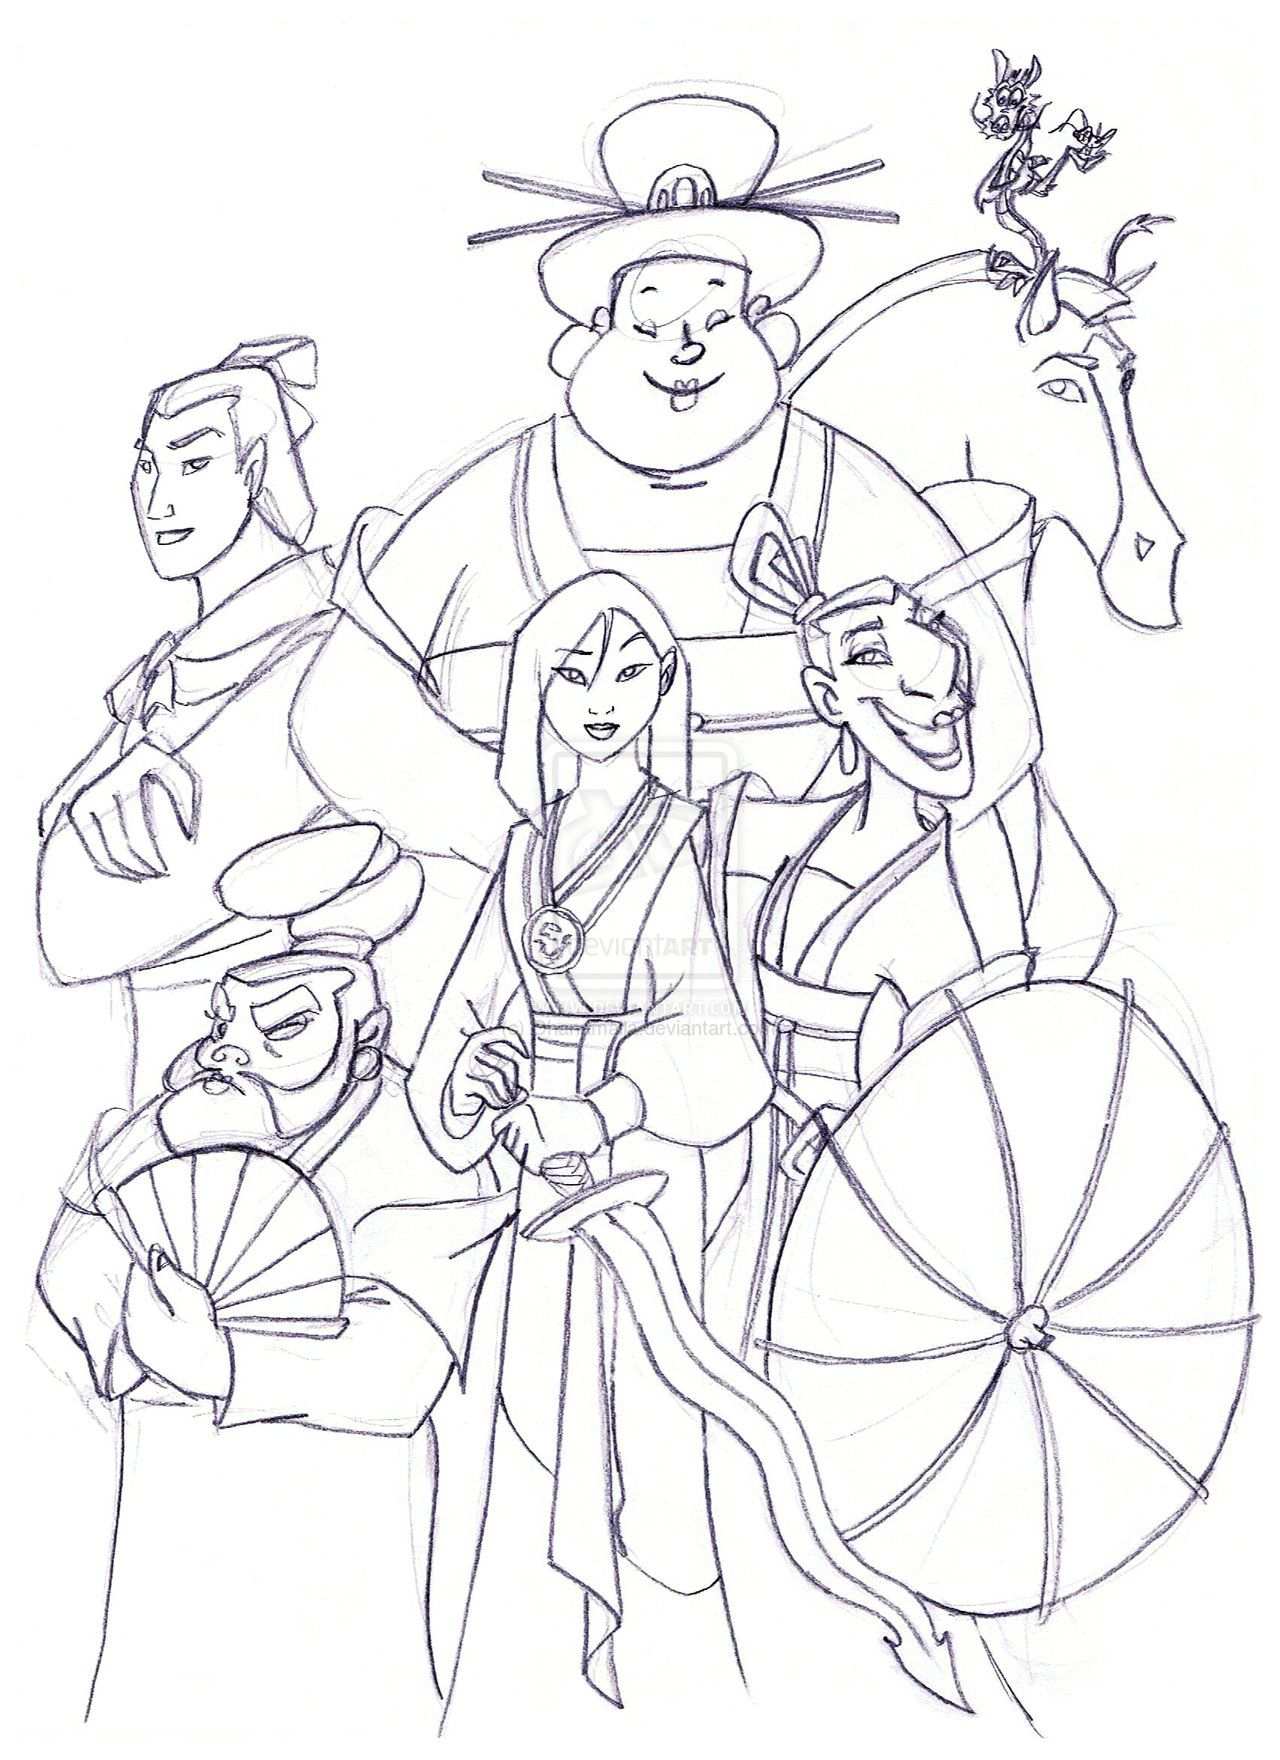 Mulan fan art Coloring Pages | Mulan's team by Ohanamaila ...